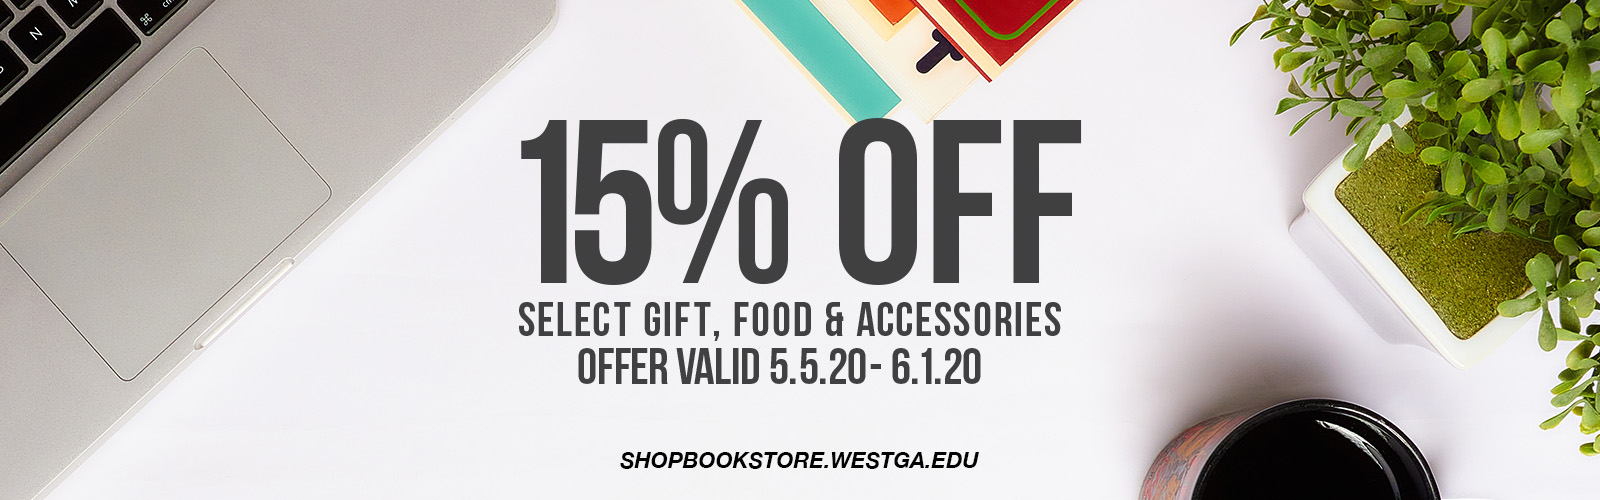 15% off gifts and accessories at shopbookstore.westga.edu